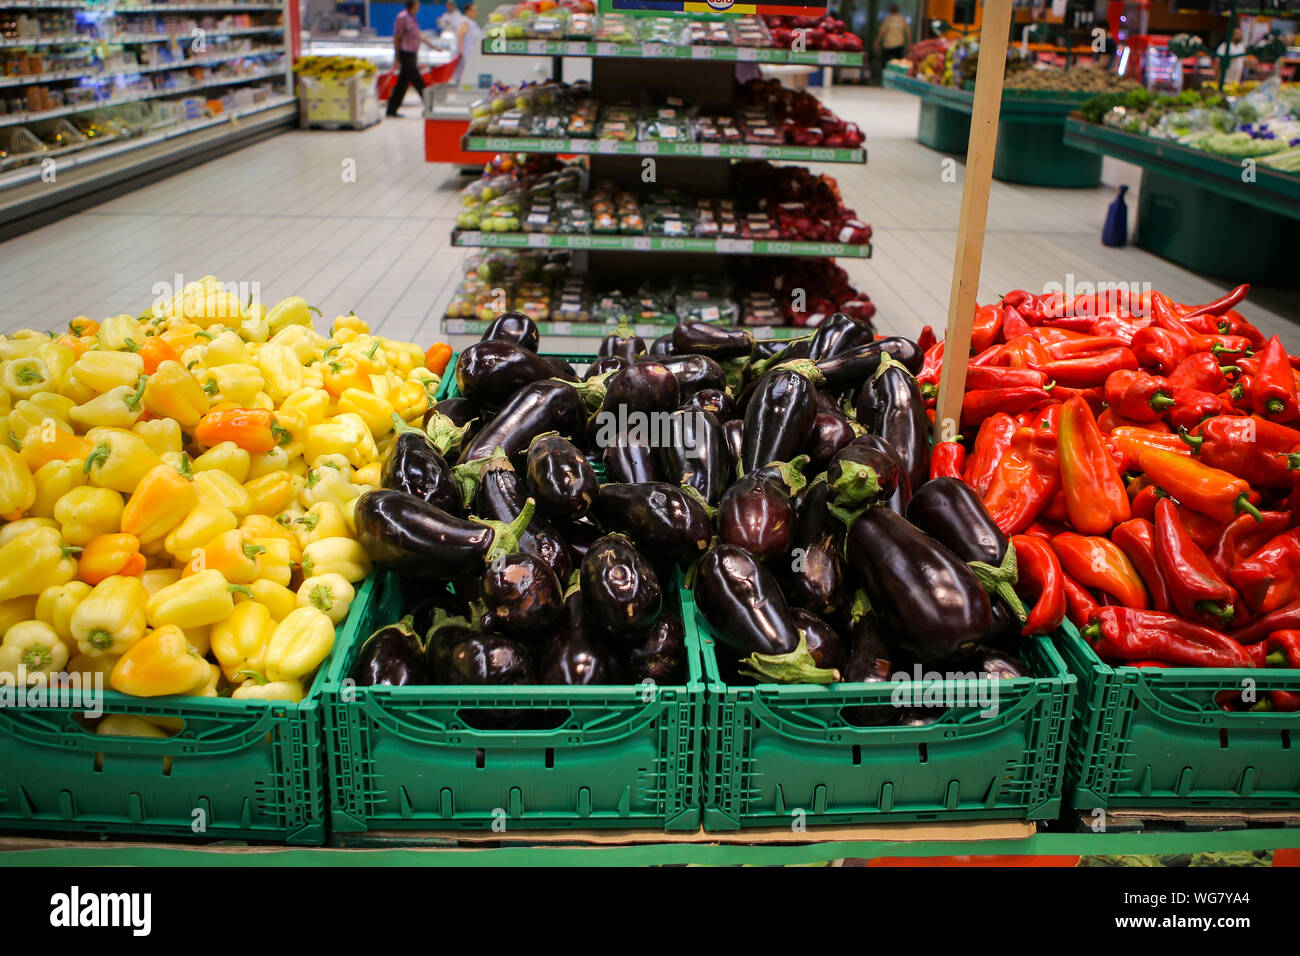 Red sweet peppers, eggplants and yellow sweet peppers on the fruits and vegetables aisle in a store Stock Photo